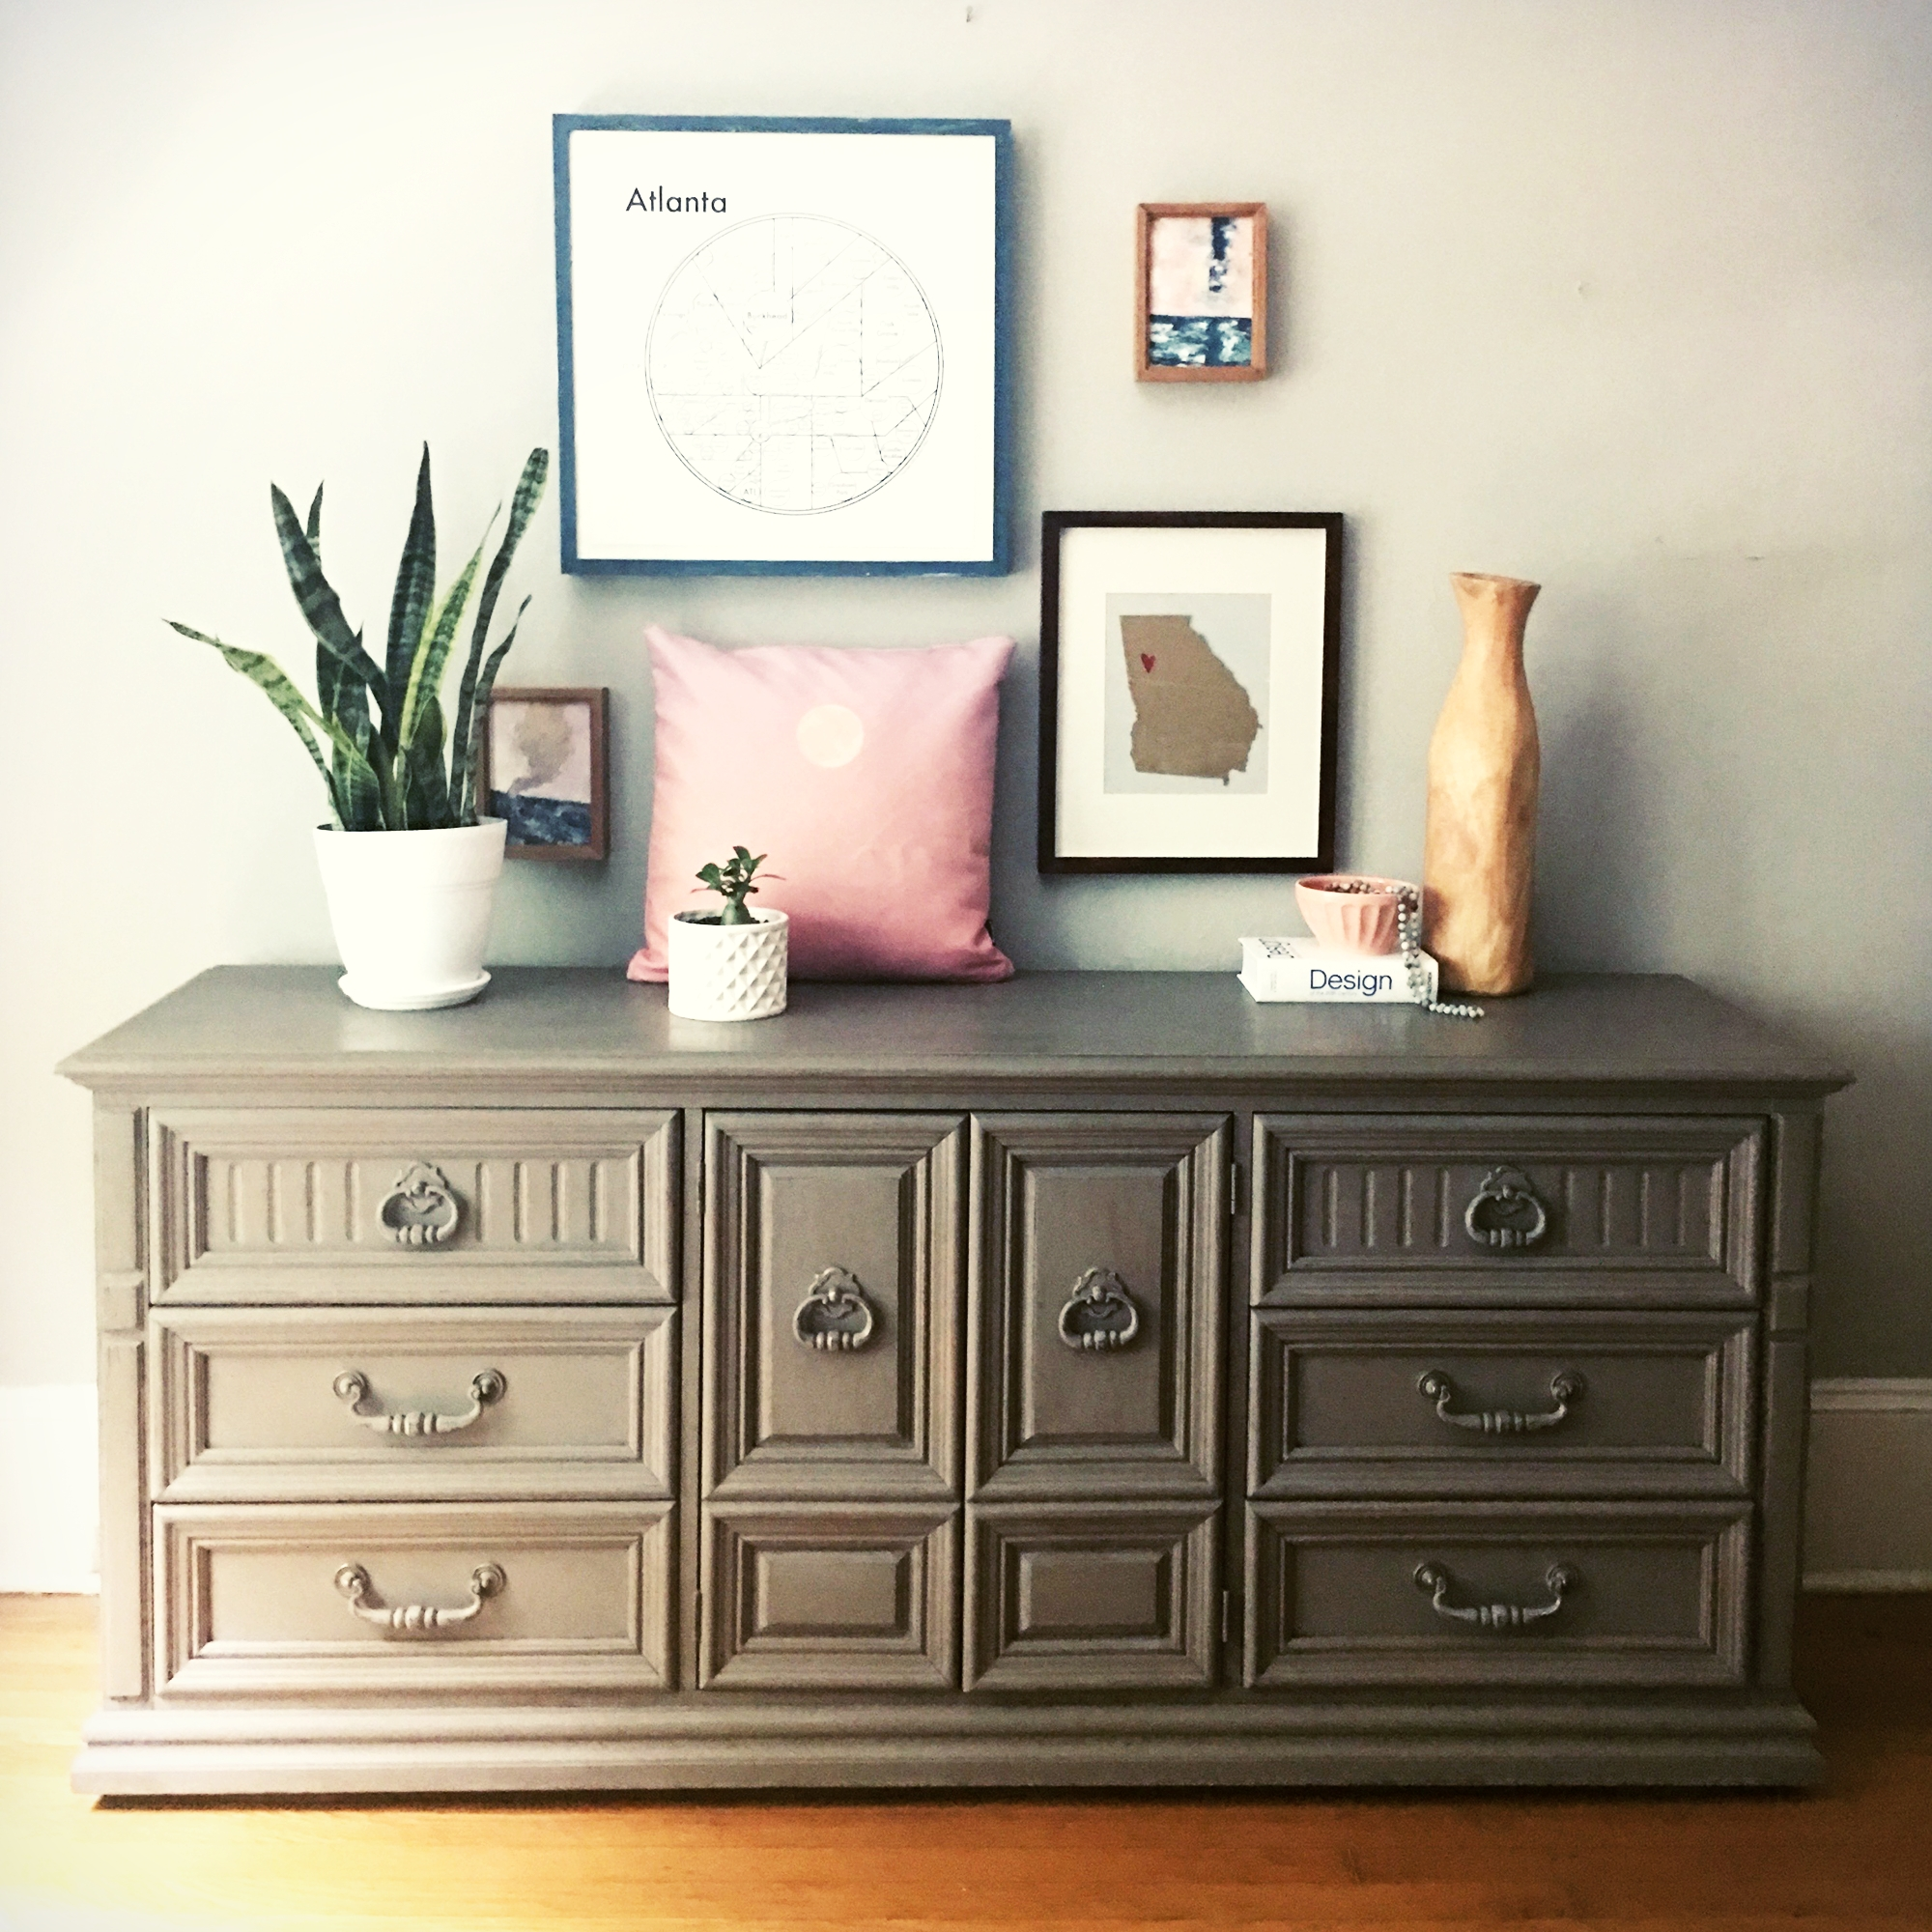 jo-torrijos-a-simpler-design-atlanta-painted-furniture-annie-sloan-cocoa-chalk-paint-dresser-styling-ideas-6.jpg